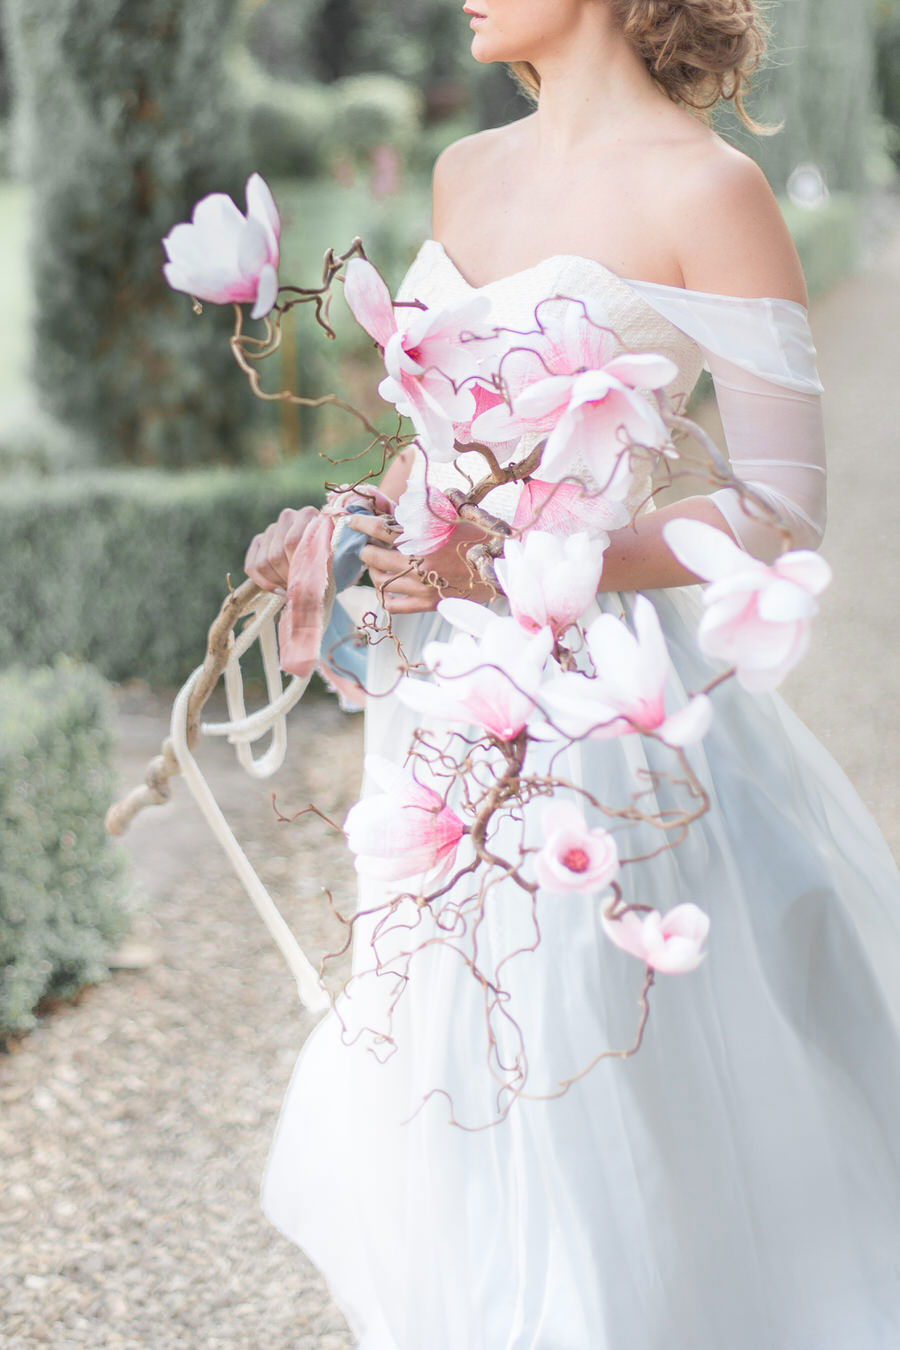 Natural Elements! A Fine-Art Inspired Editorial With Magnolia & Cherry Blossoms0050